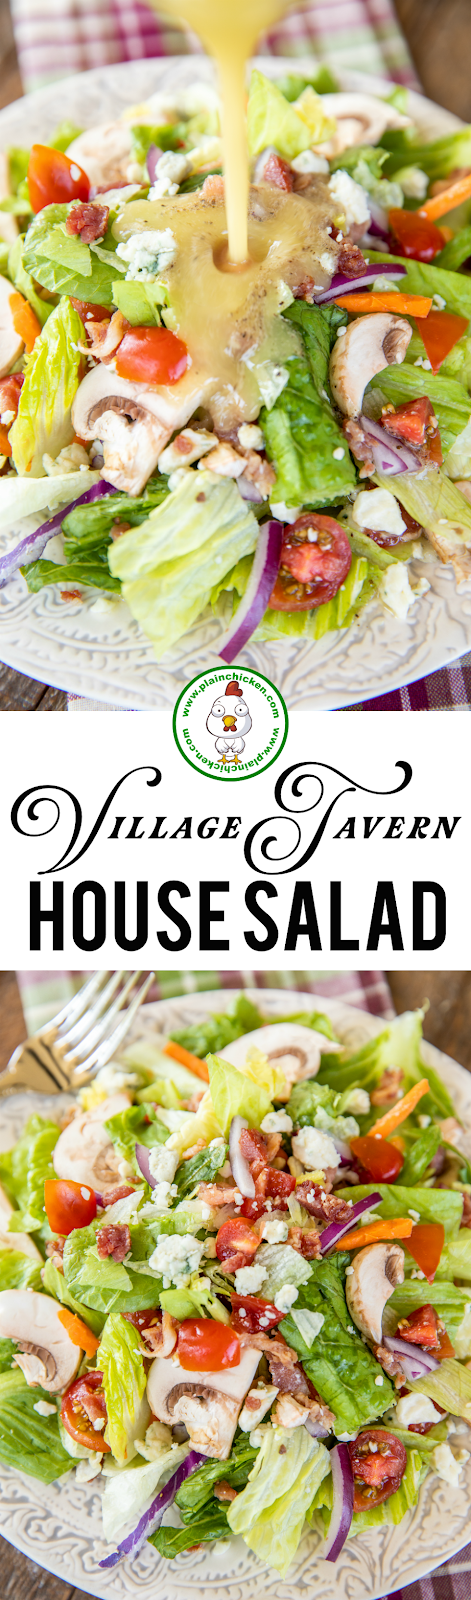 collage of 2 photos of a salad